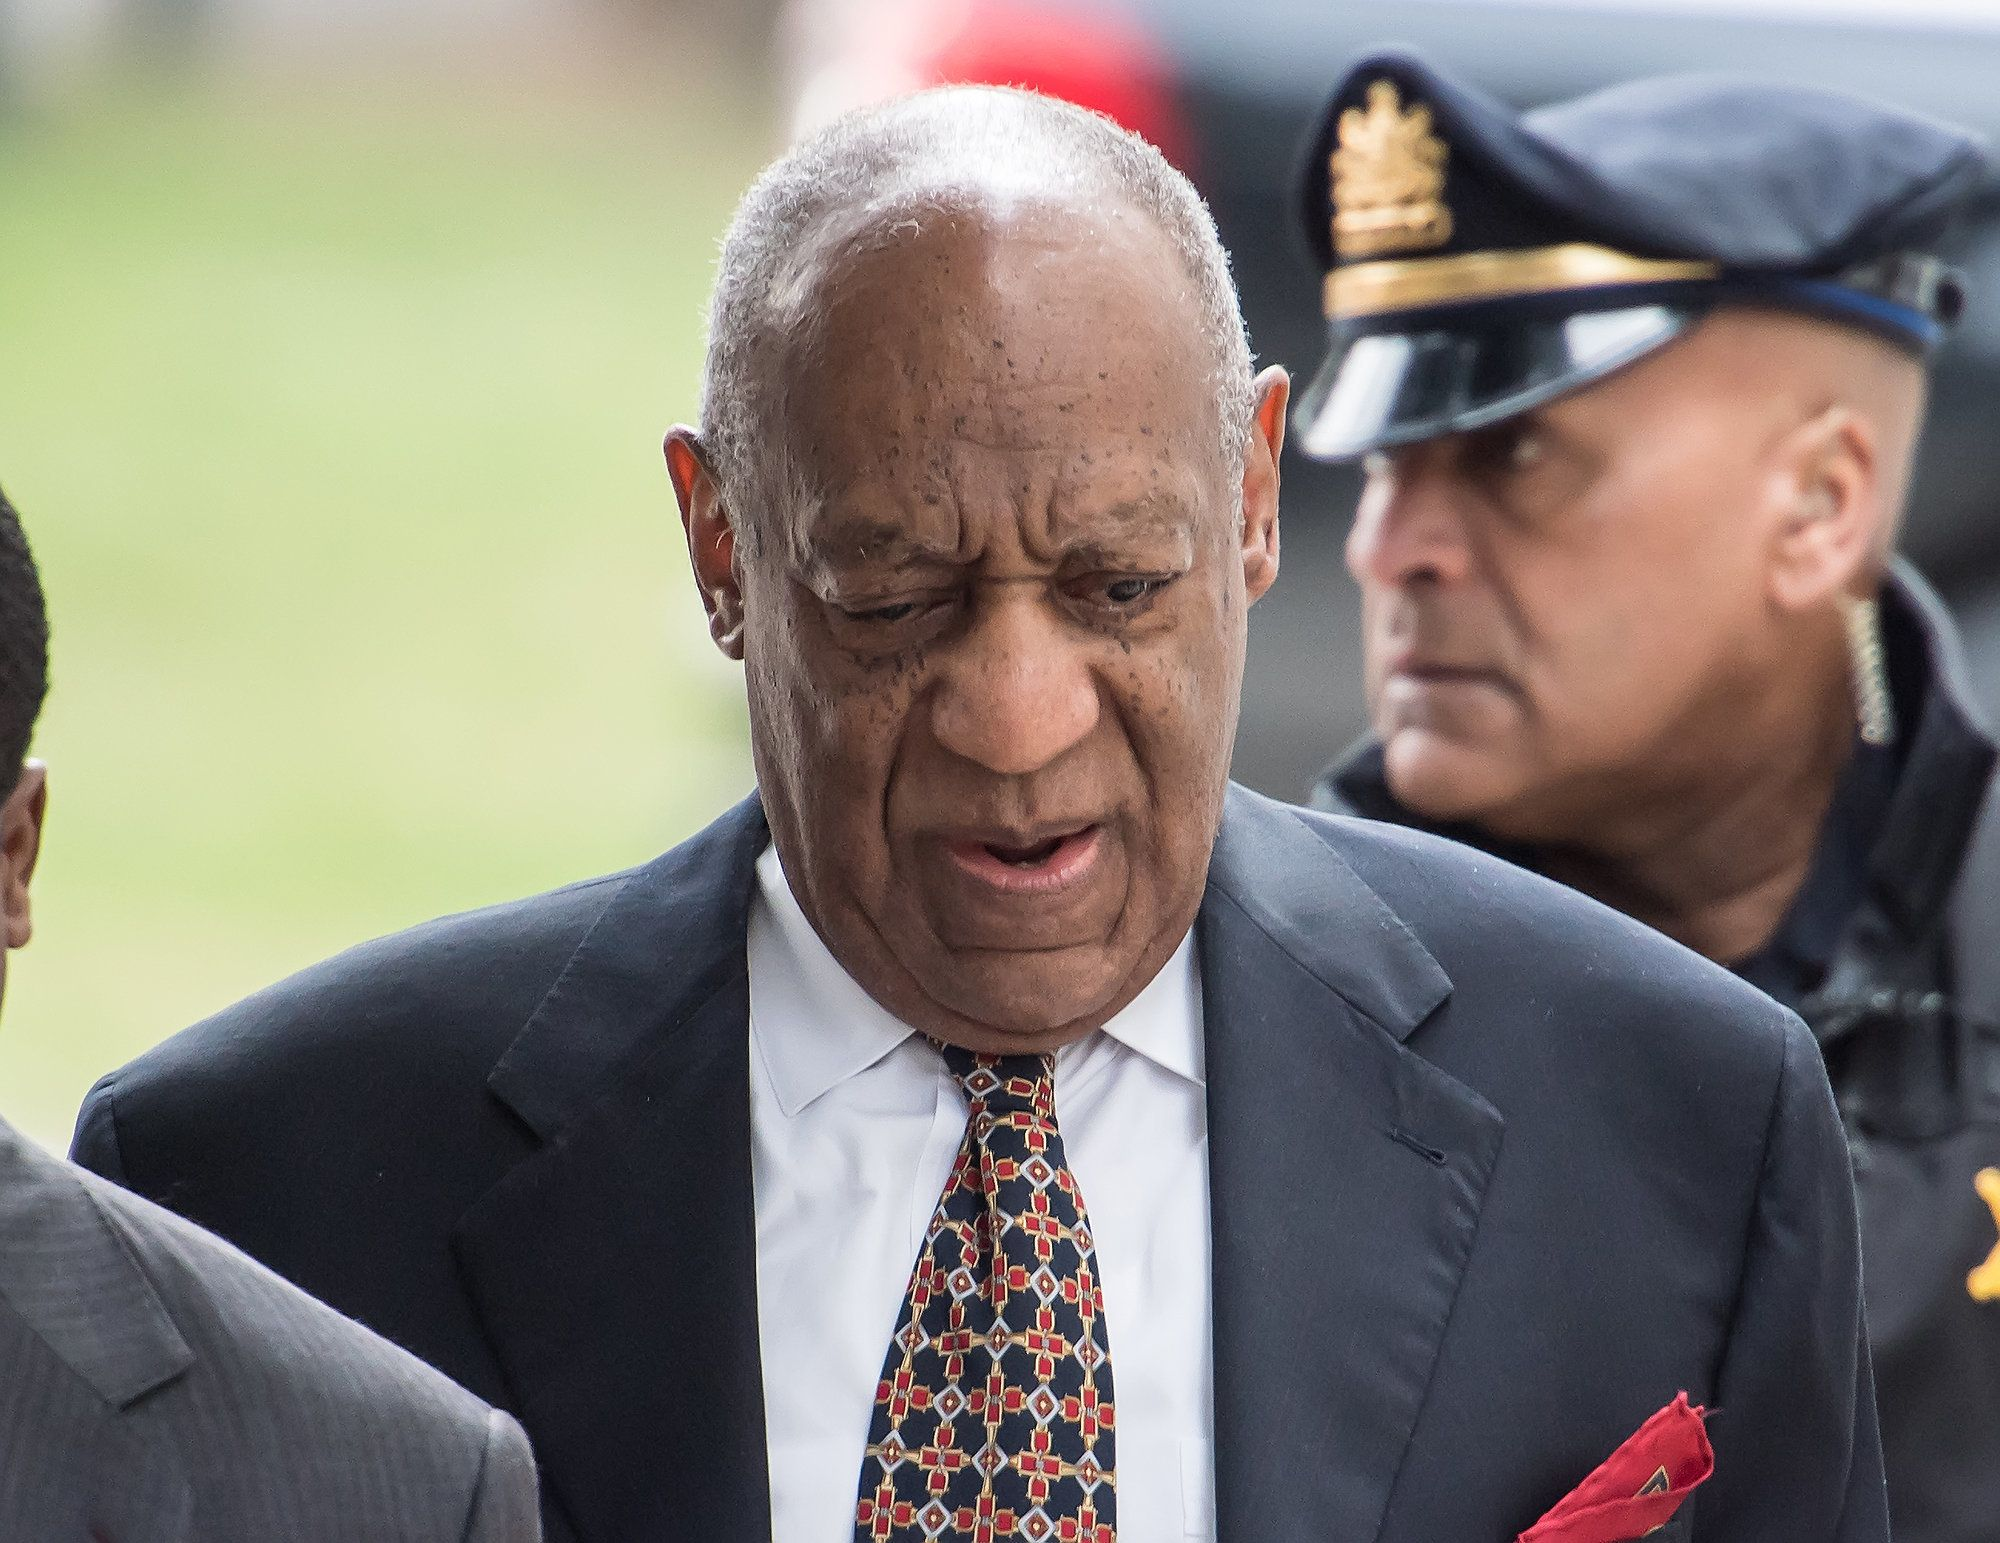 Cosby outside of the Montgomery County Courthouse during the fifth day of his retrial on April 13,